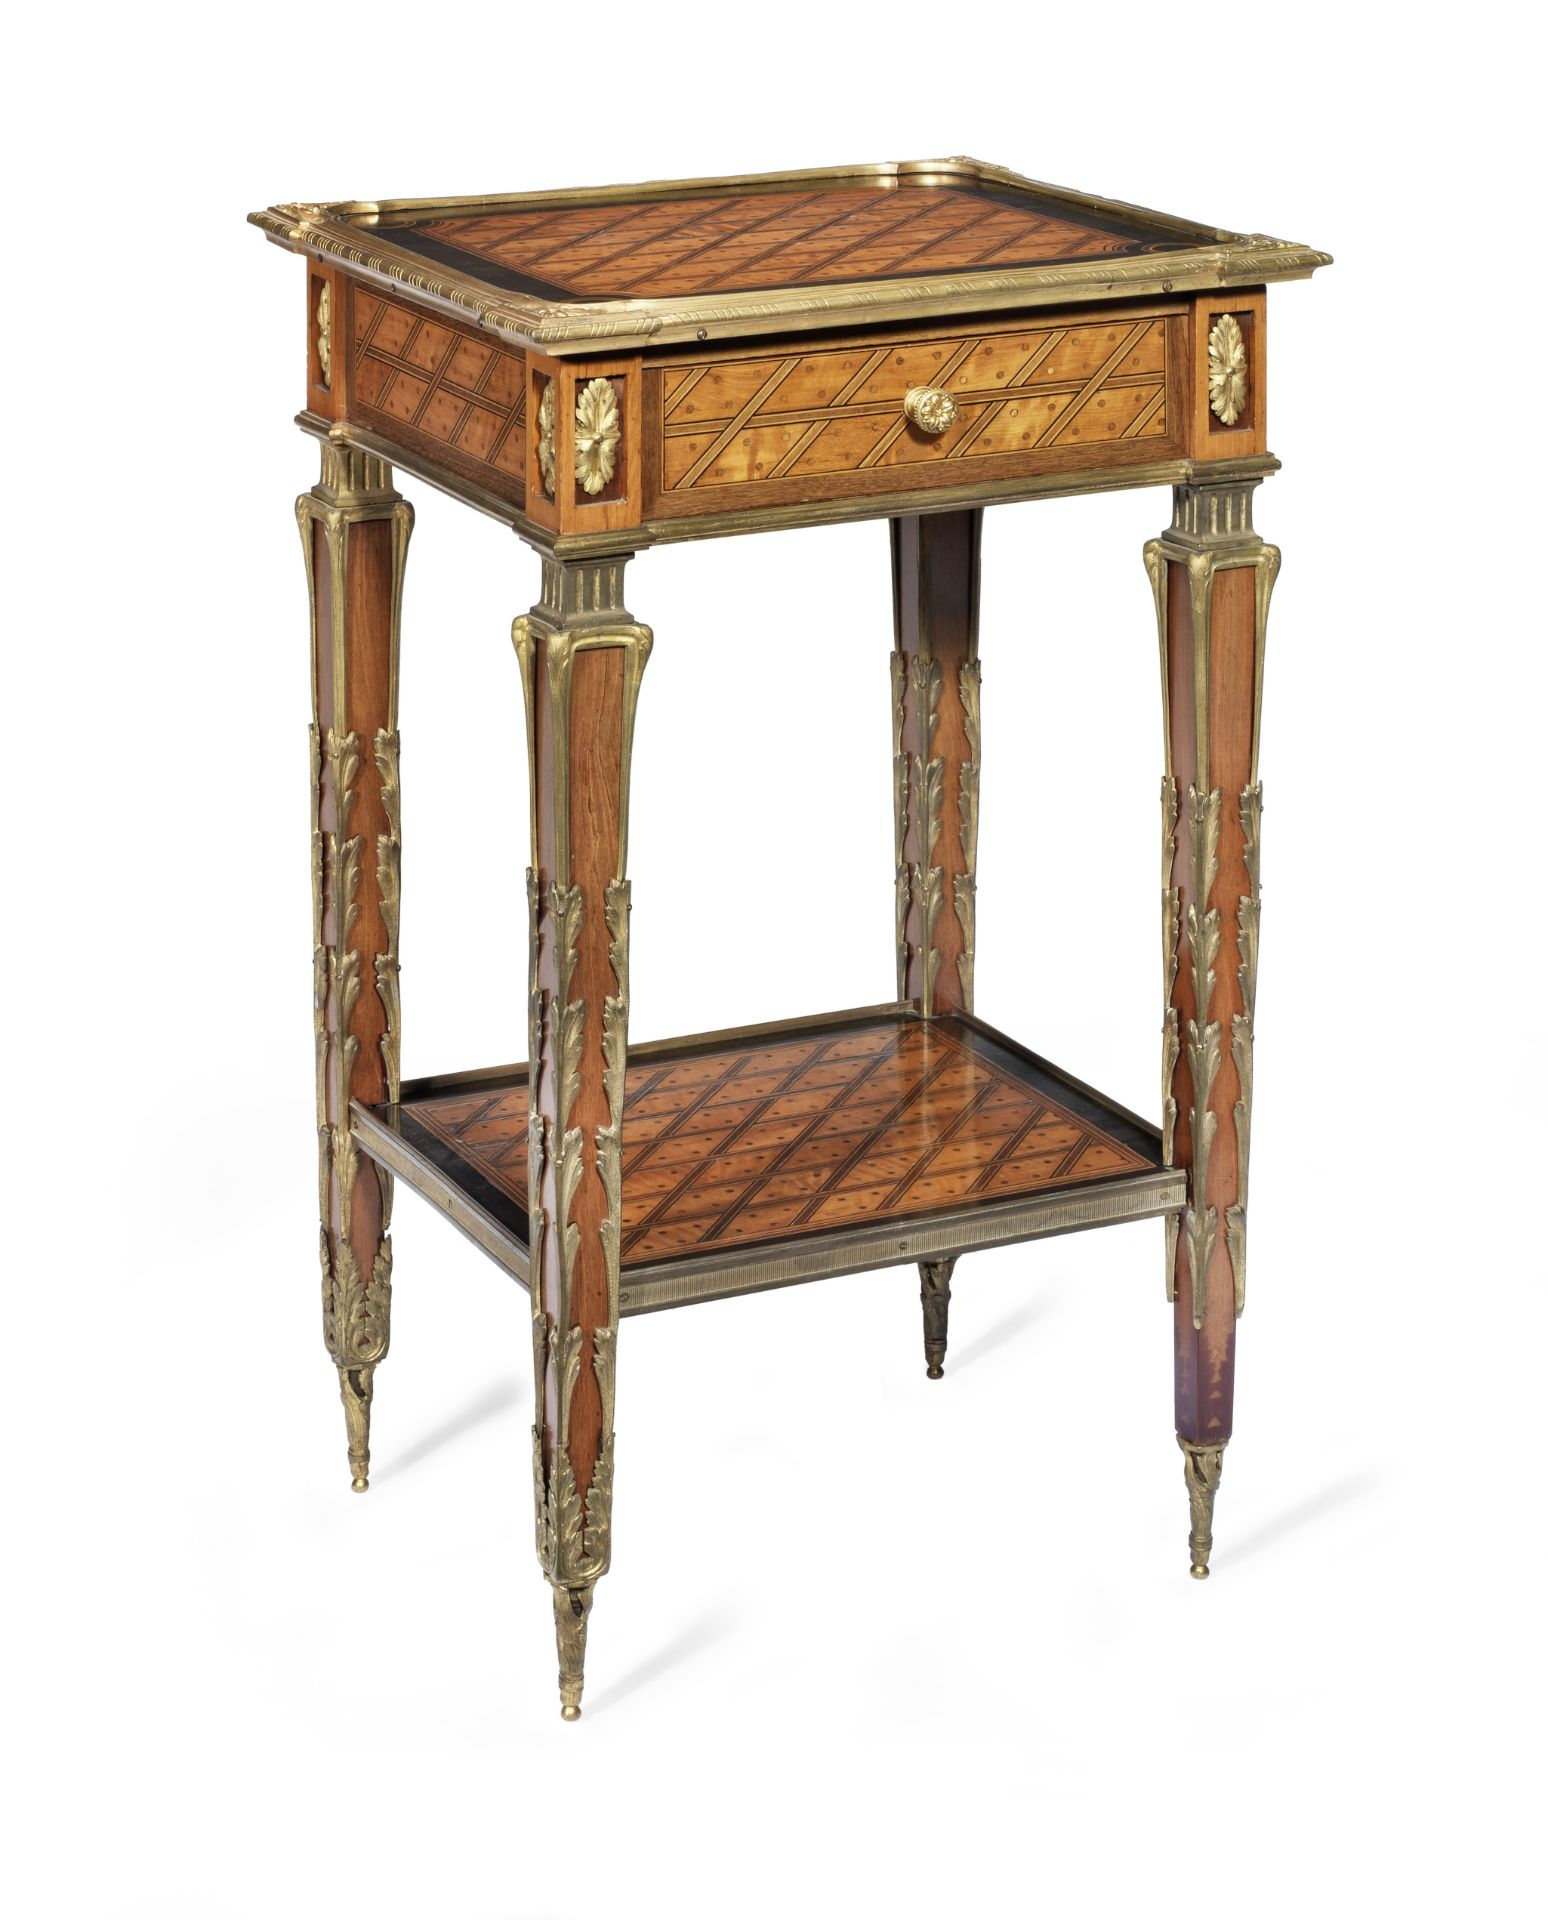 Los 74 - A mid Victorian gilt bronze mounted satinwood, purplewood and parquetry occasional table attribut...